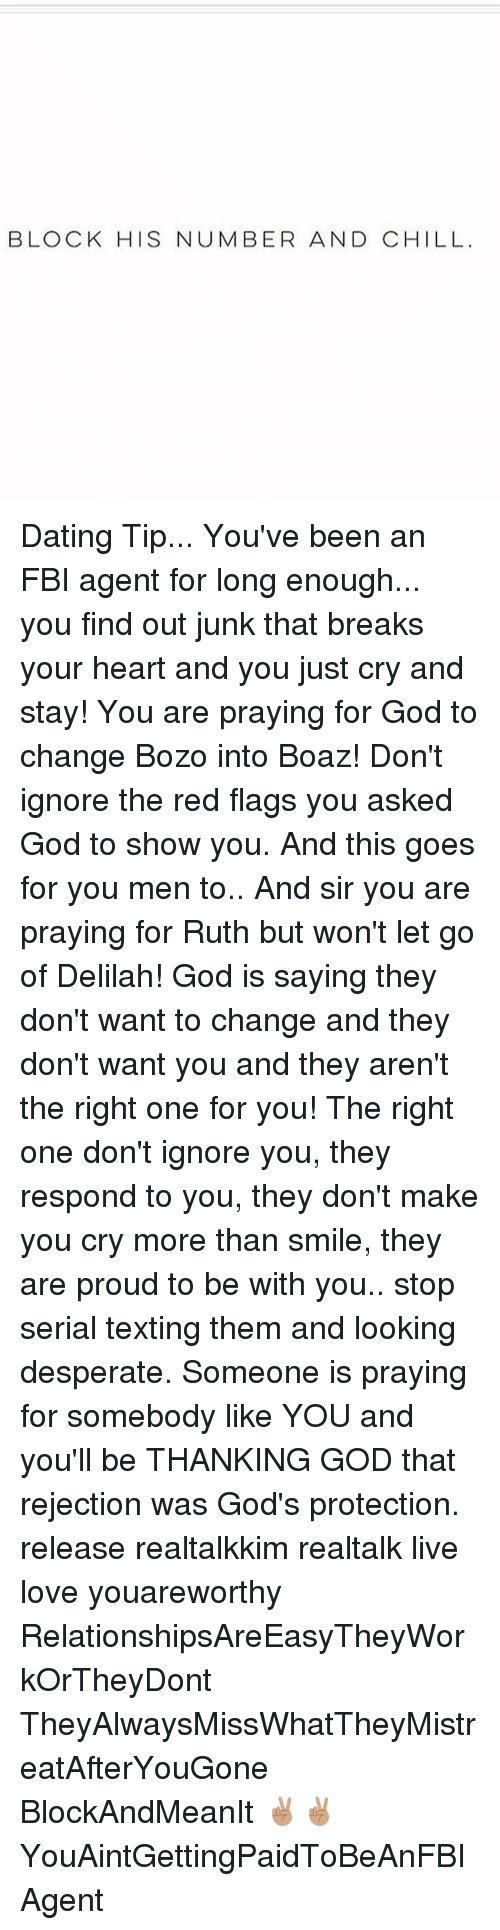 Chill, Dating, and Desperate: BLOCK HIS NUMBER AND CHILL Dating Tip... You've been an FBI agent for long enough... you find out junk that breaks your heart and you just cry and stay! You are praying for God to change Bozo into Boaz! Don't ignore the red flags you asked God to show you. And this goes for you men to.. And sir you are praying for Ruth but won't let go of Delilah! God is saying they don't want to change and they don't want you and they aren't the right one for you! The right one don't ignore you, they respond to you, they don't make you cry more than smile, they are proud to be with you.. stop serial texting them and looking desperate. Someone is praying for somebody like YOU and you'll be THANKING GOD that rejection was God's protection. release realtalkkim realtalk live love youareworthy RelationshipsAreEasyTheyWorkOrTheyDont TheyAlwaysMissWhatTheyMistreatAfterYouGone BlockAndMeanIt ✌🏽️✌🏽️ YouAintGettingPaidToBeAnFBIAgent